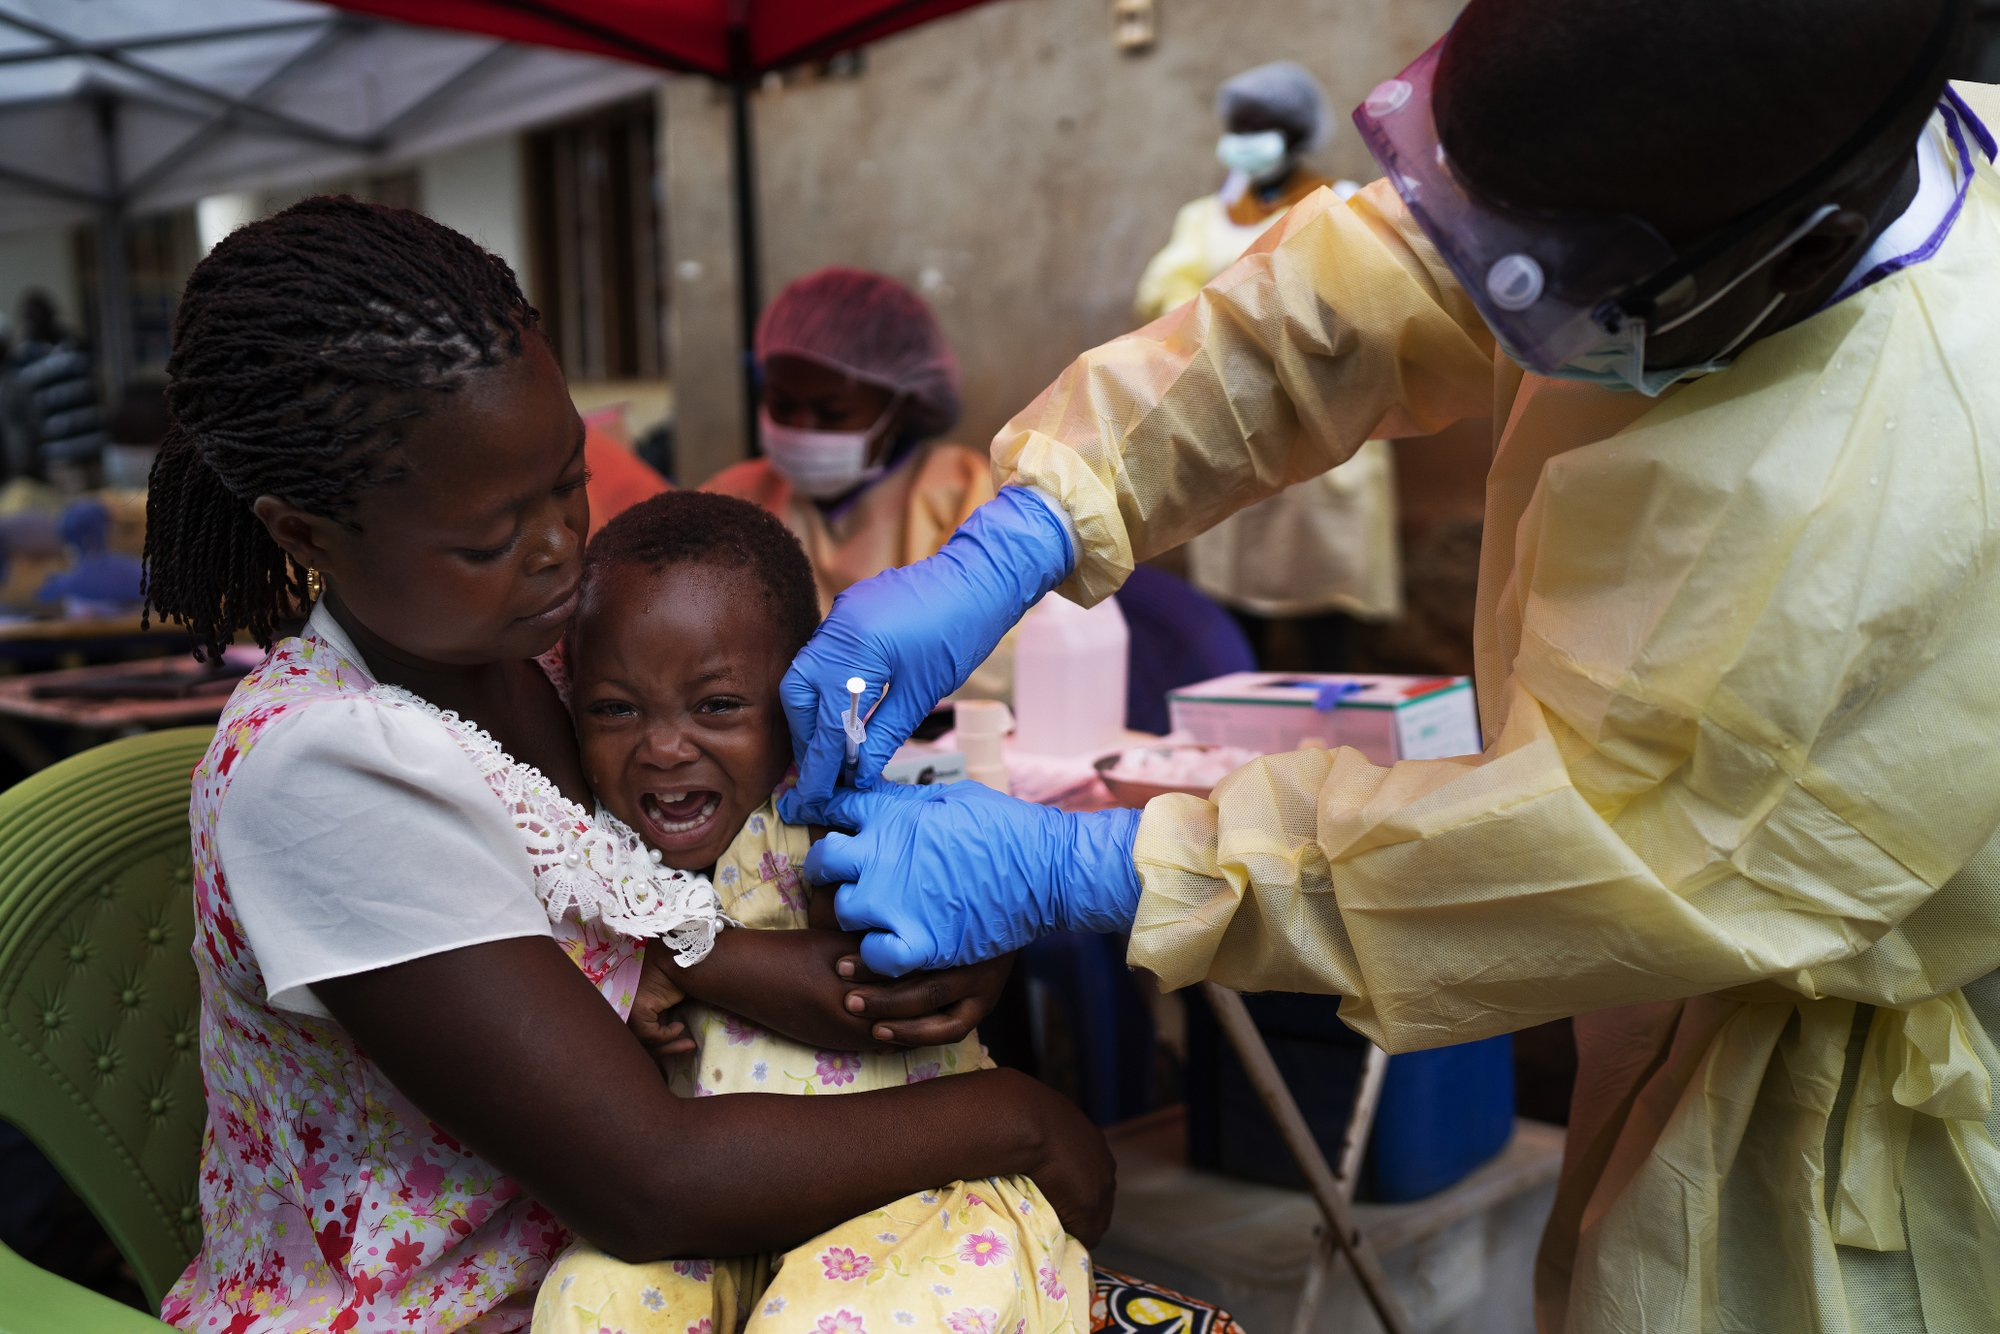 2nd Ebola vaccine to be used in Congo, as UN efforts slammed